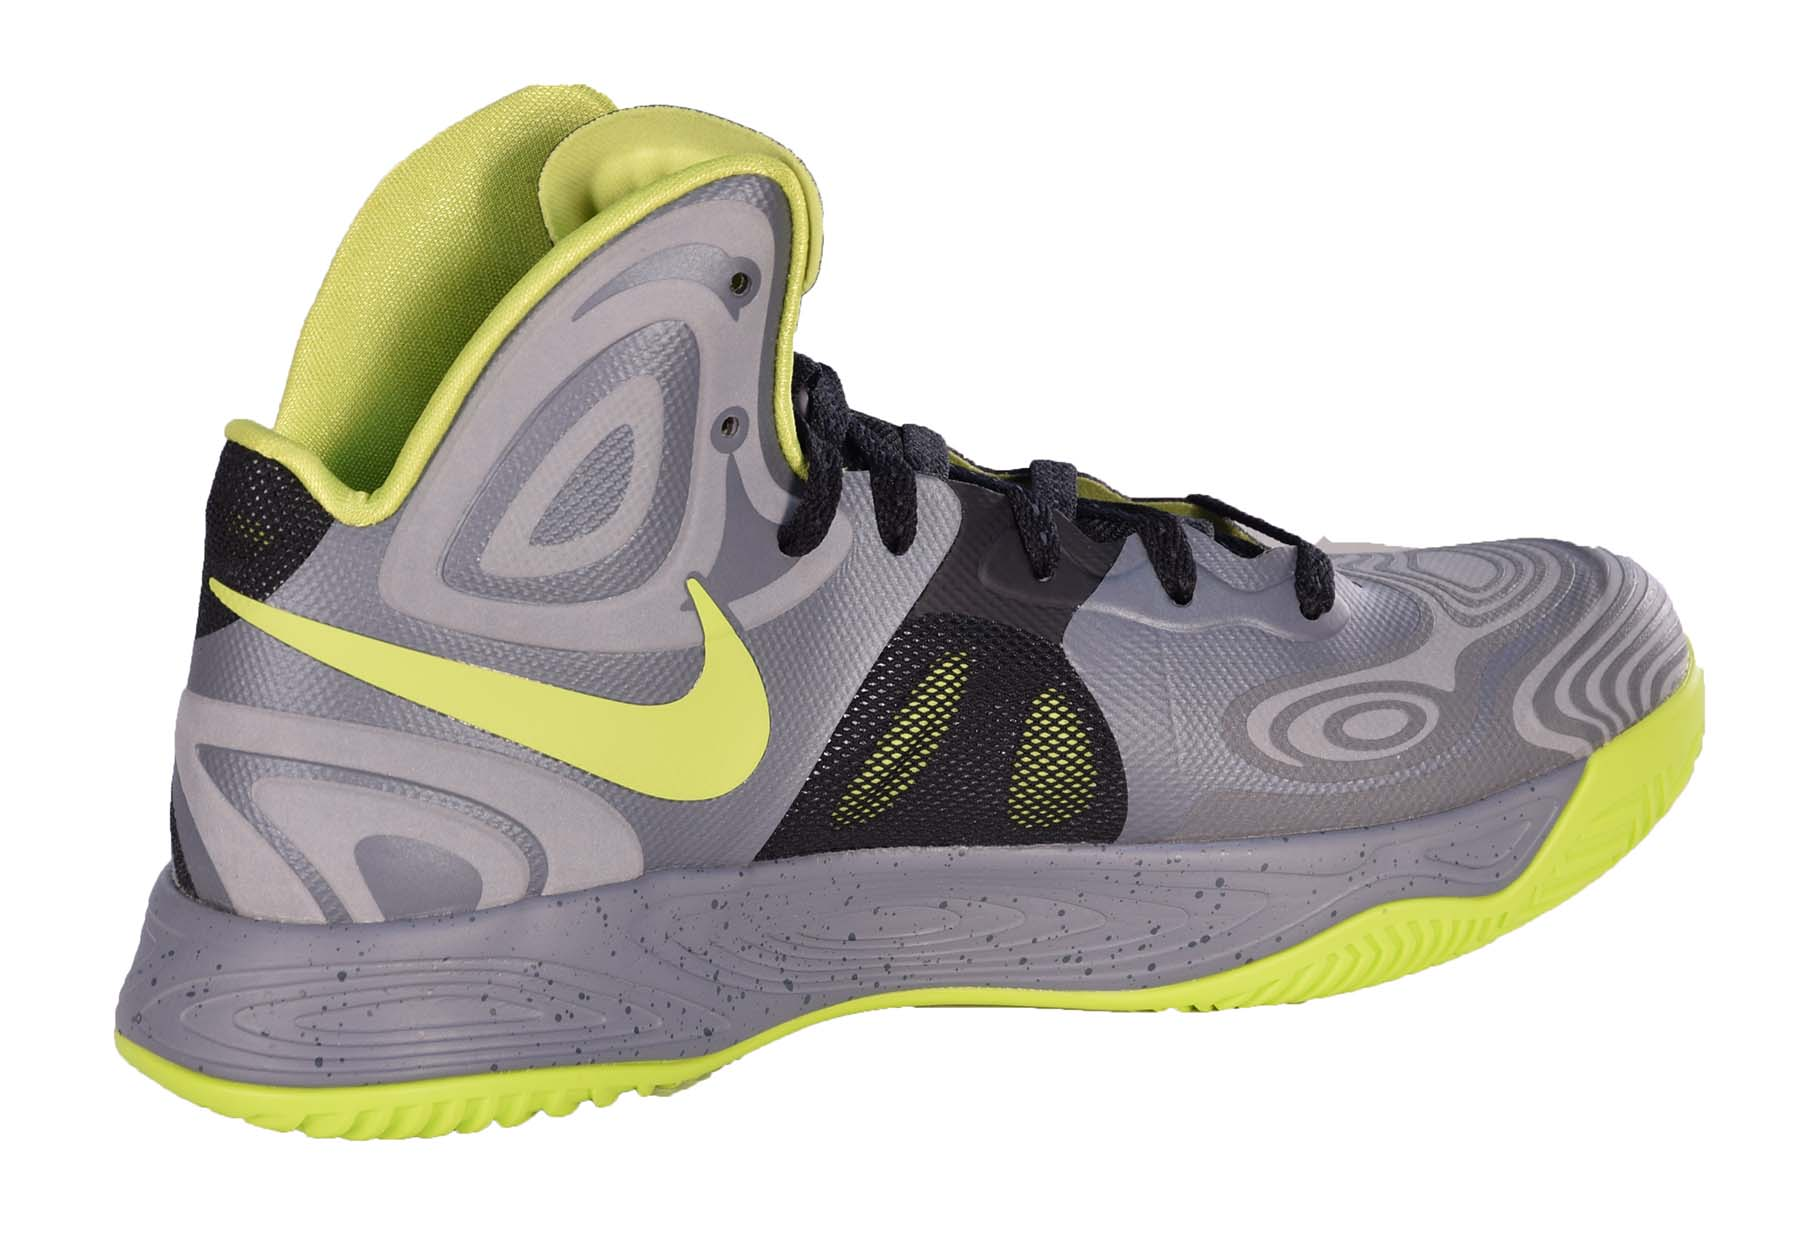 Cool Nike Basketball: Nike Men's Hyperfuse Supreme Basketball Shoes-Cool Grey